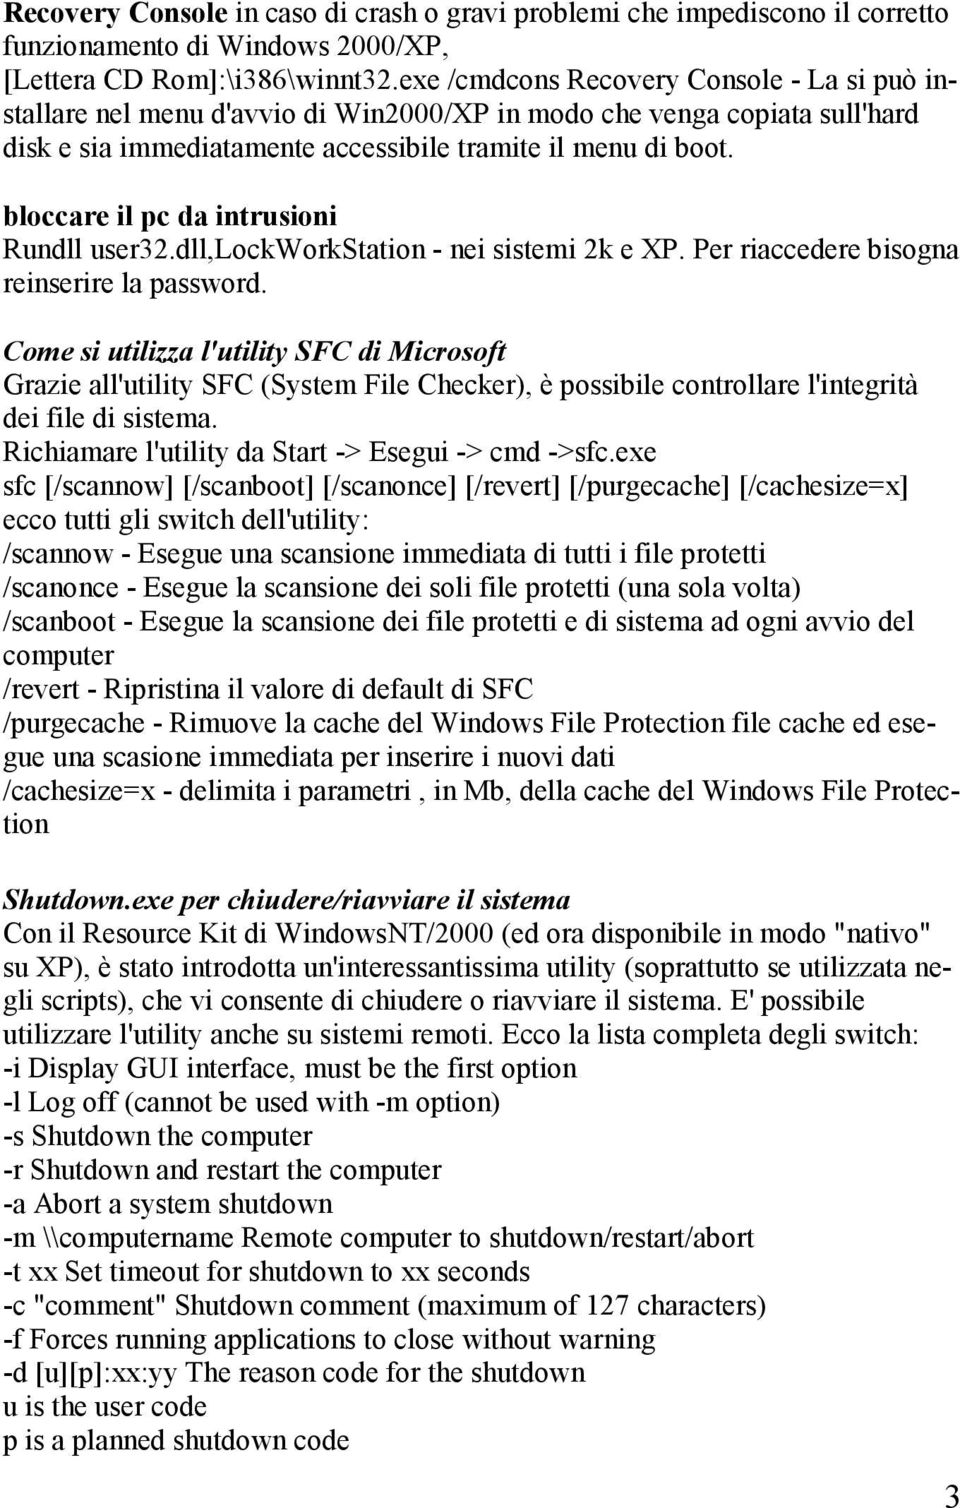 bloccare il pc da intrusioni Rundll user32.dll,lockworkstation - nei sistemi 2k e XP. Per riaccedere bisogna reinserire la password.